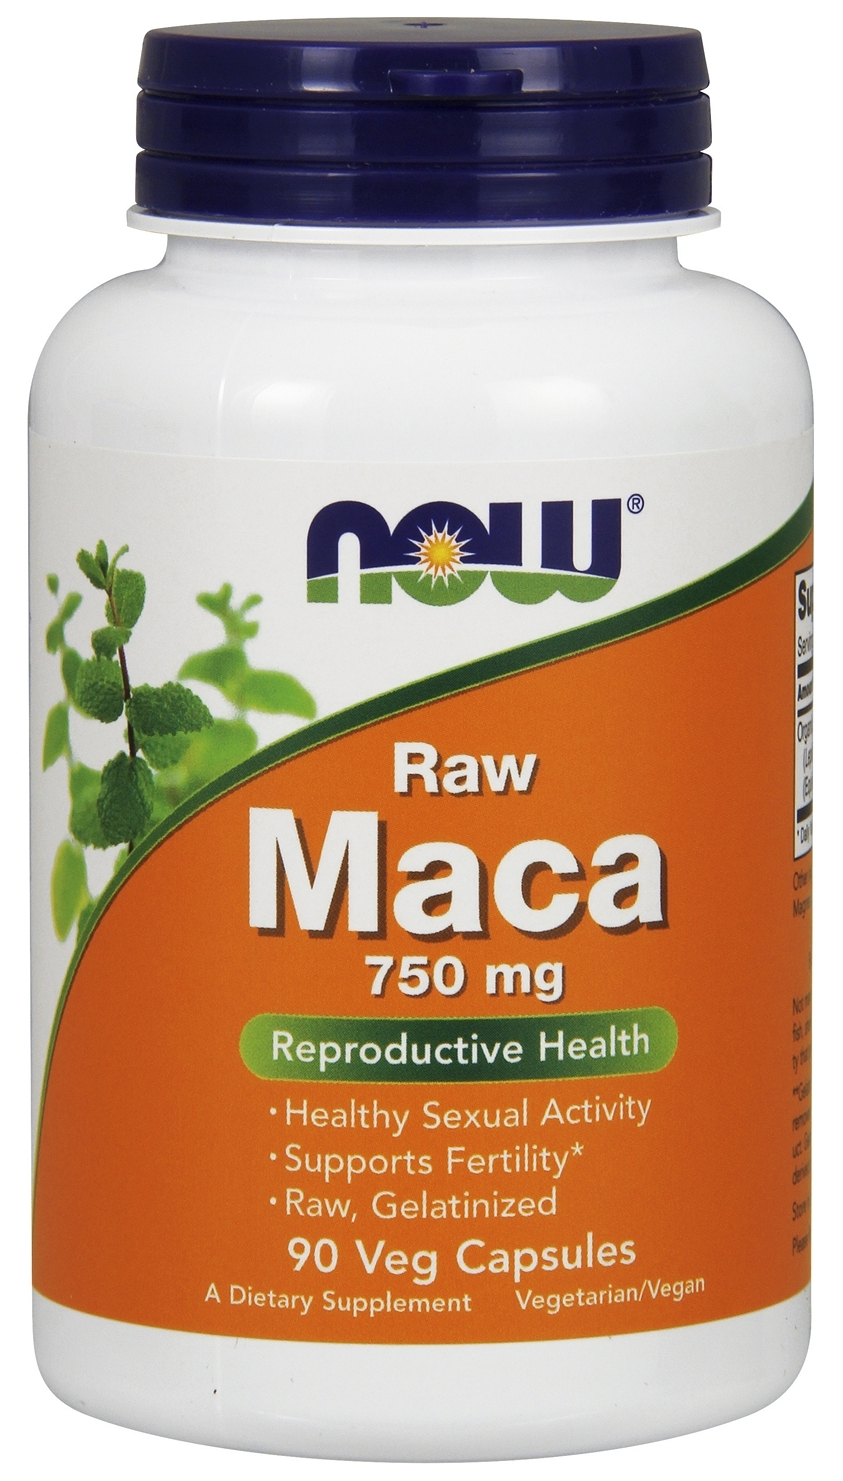 Raw Maca 750 mg 90 Vcaps by NOW